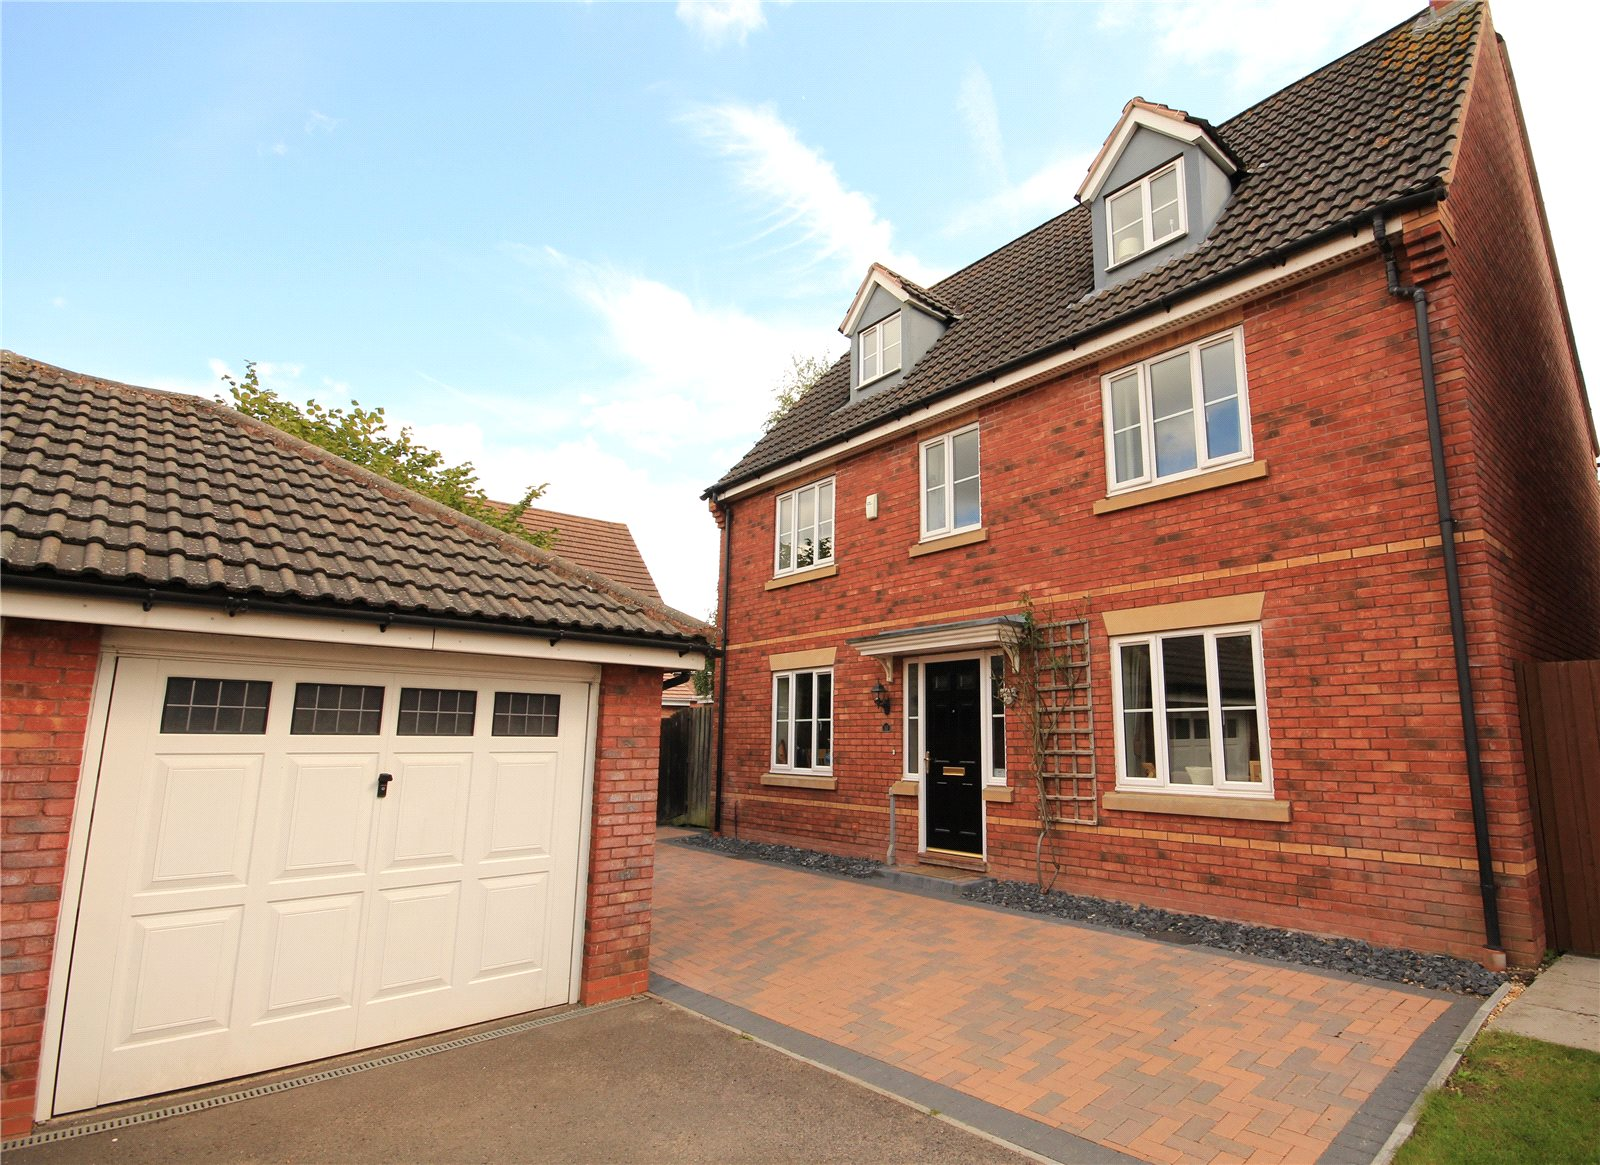 5 Bedrooms Detached House for sale in Britannia Close Winterbourne Bristol BS36